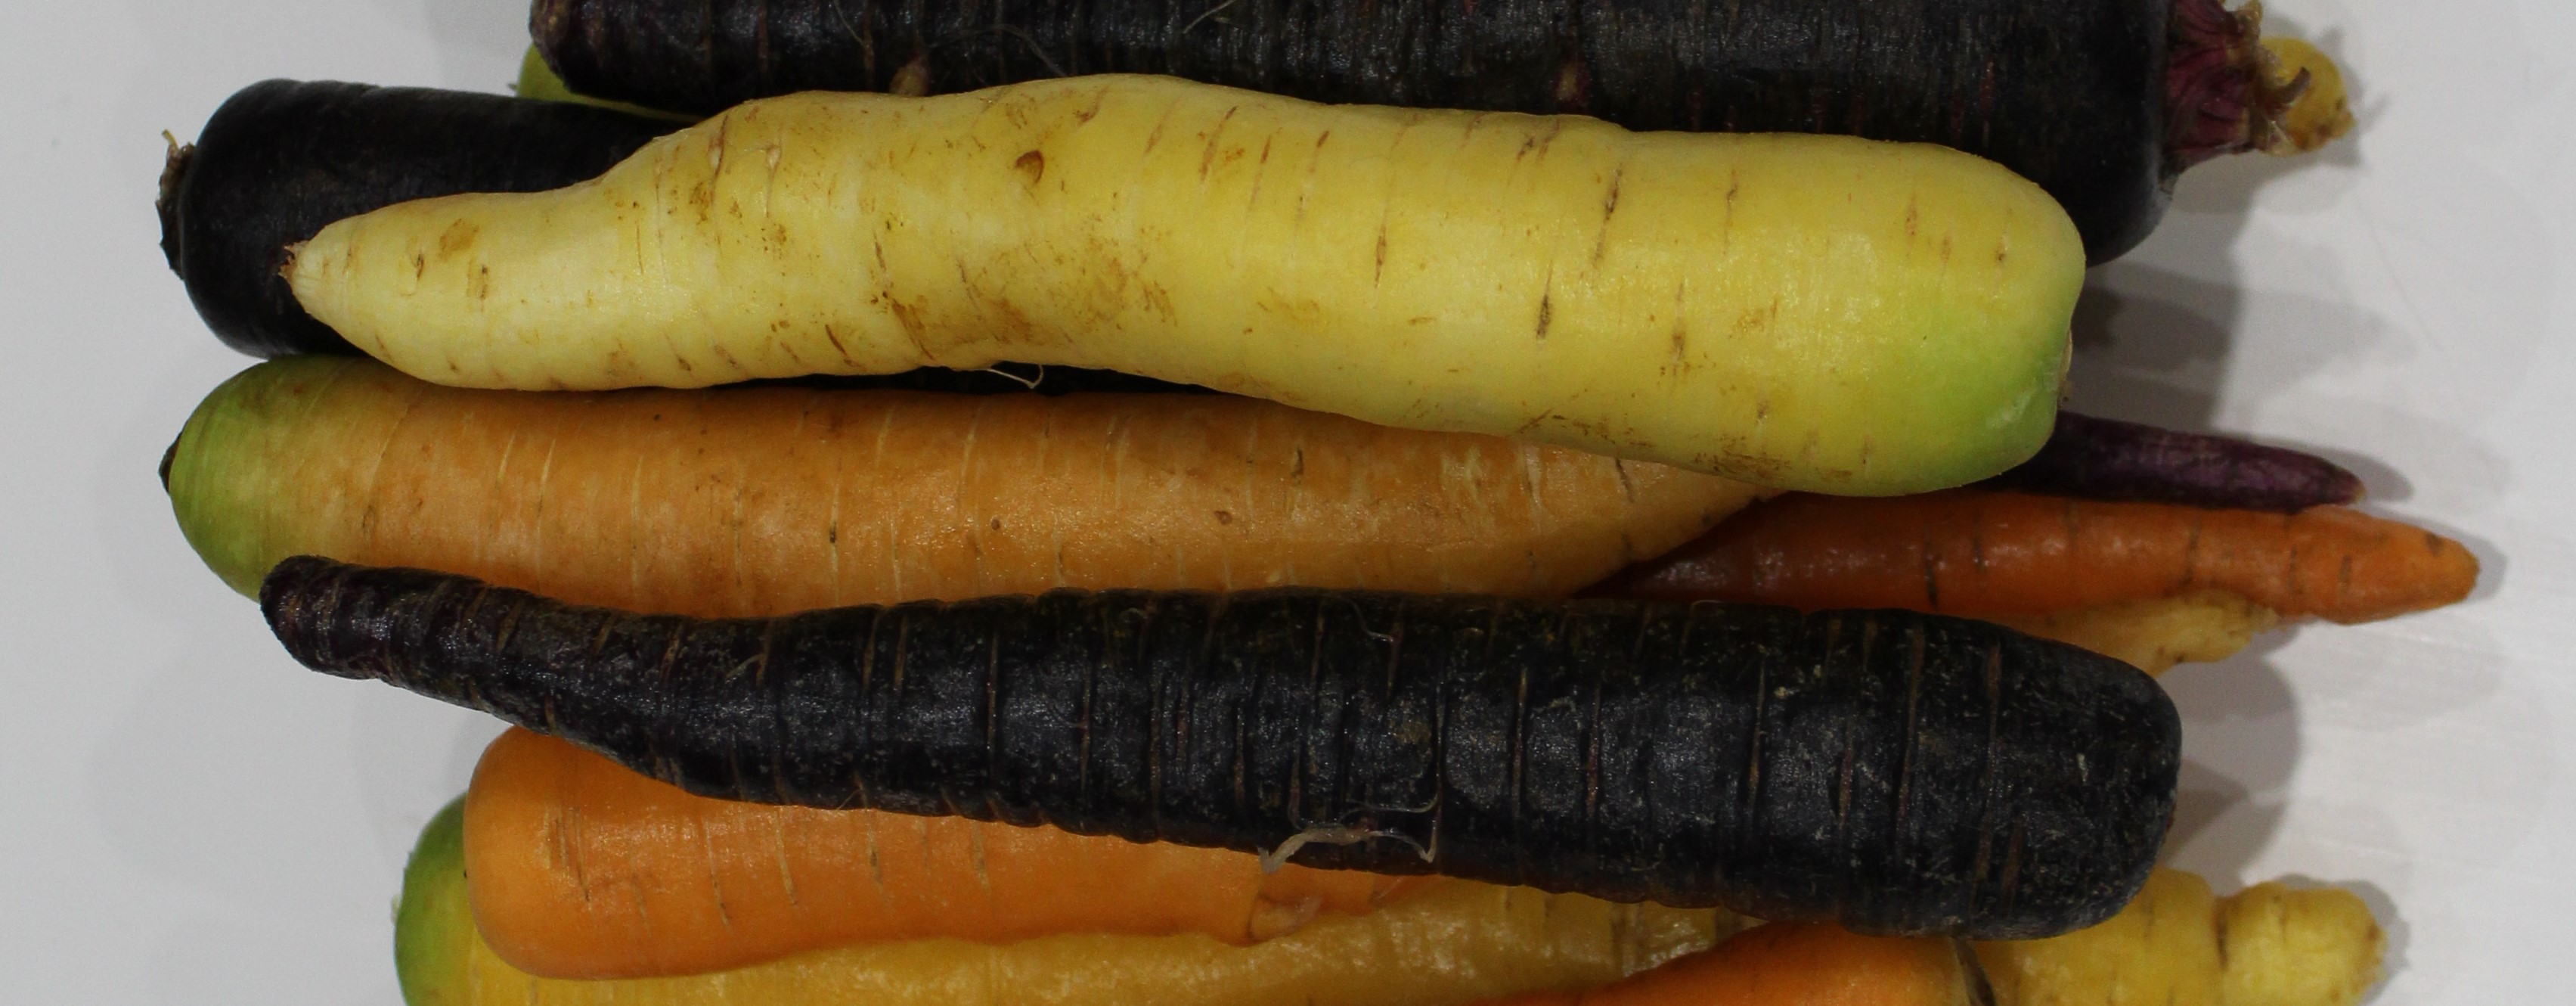 Why Are Rainbow Carrots So Good For You?